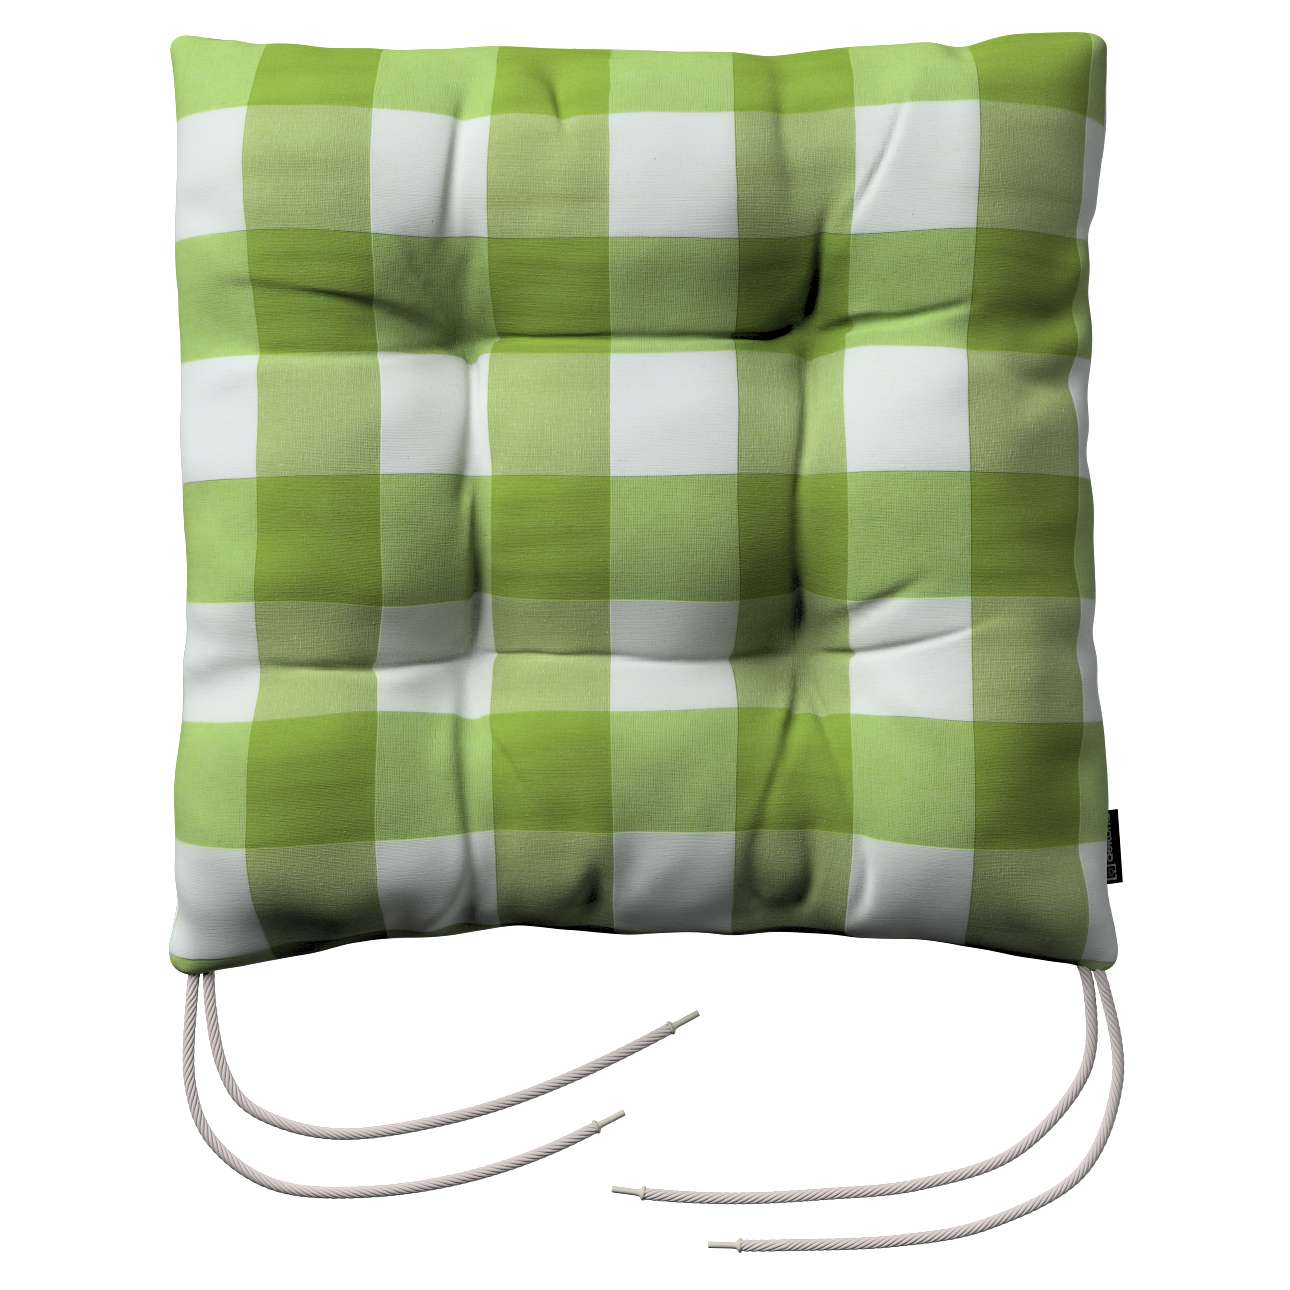 Jack seat pad with ties 40 × 40 × 8 cm (16 × 16 × 3 inch) in collection Quadro, fabric: 136-36